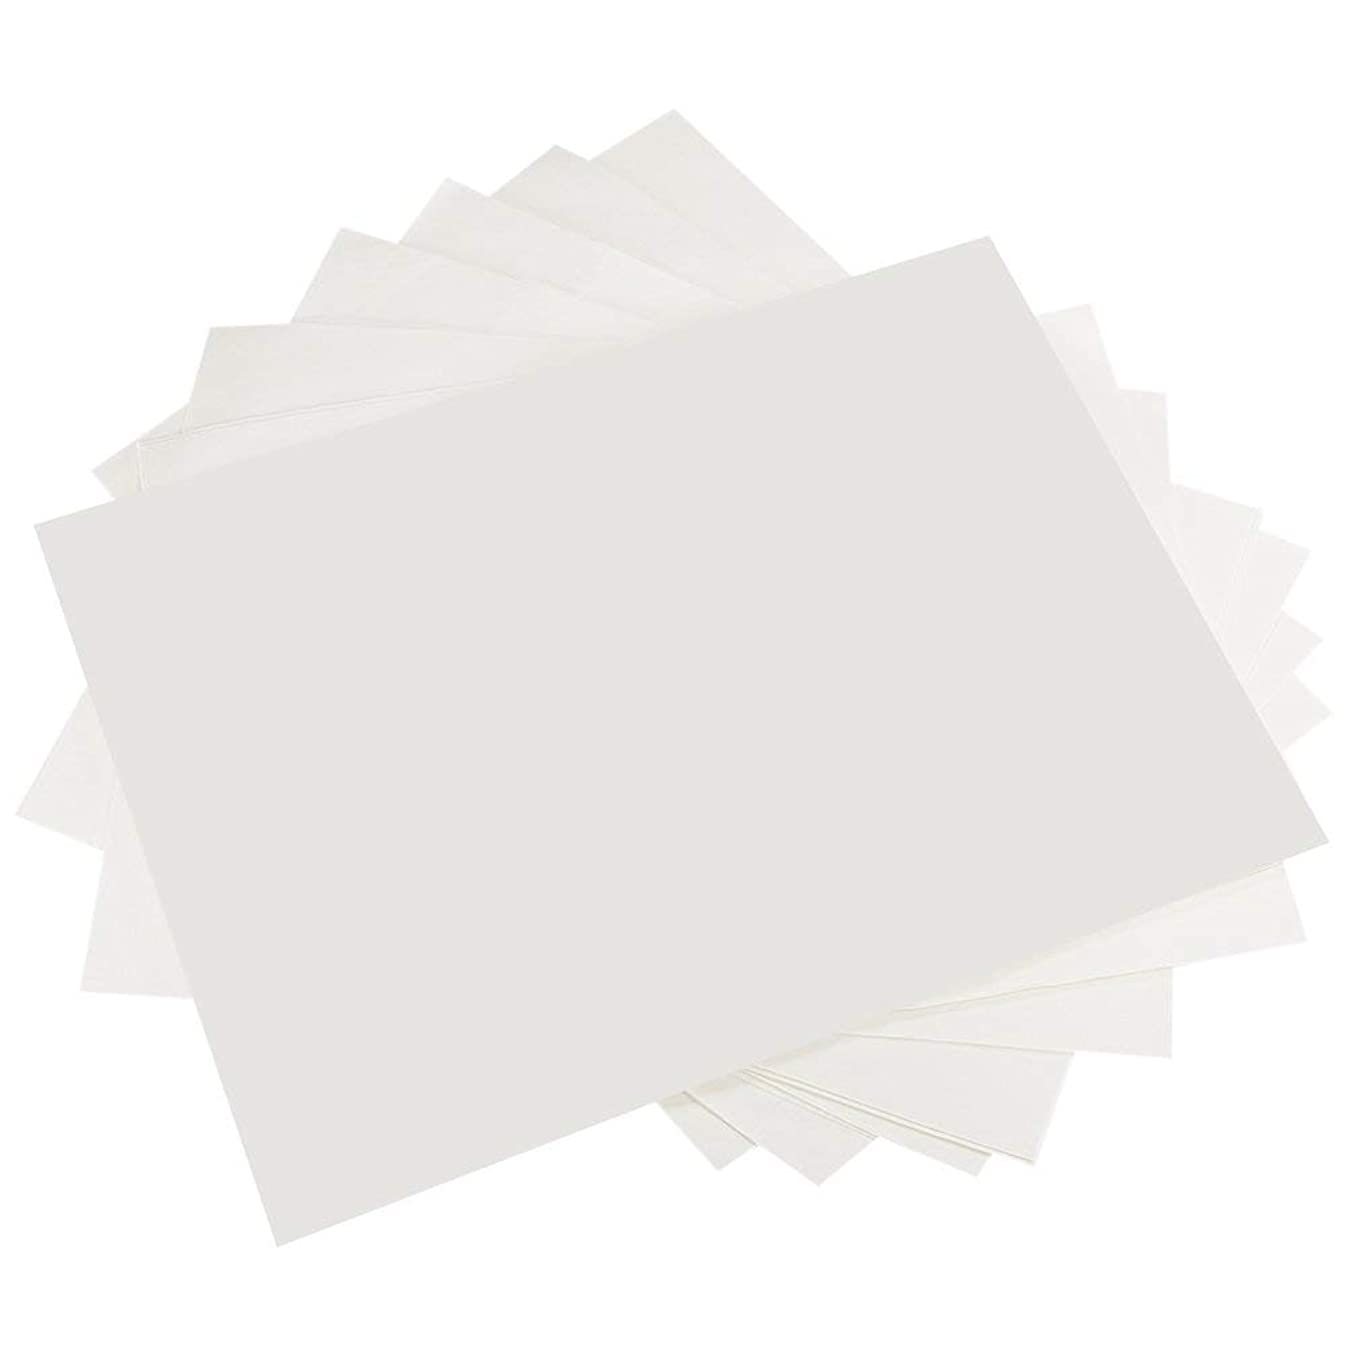 Fasmov Parchment Paper Baking Liner Sheets Pan liner, 11.8 x 15.7